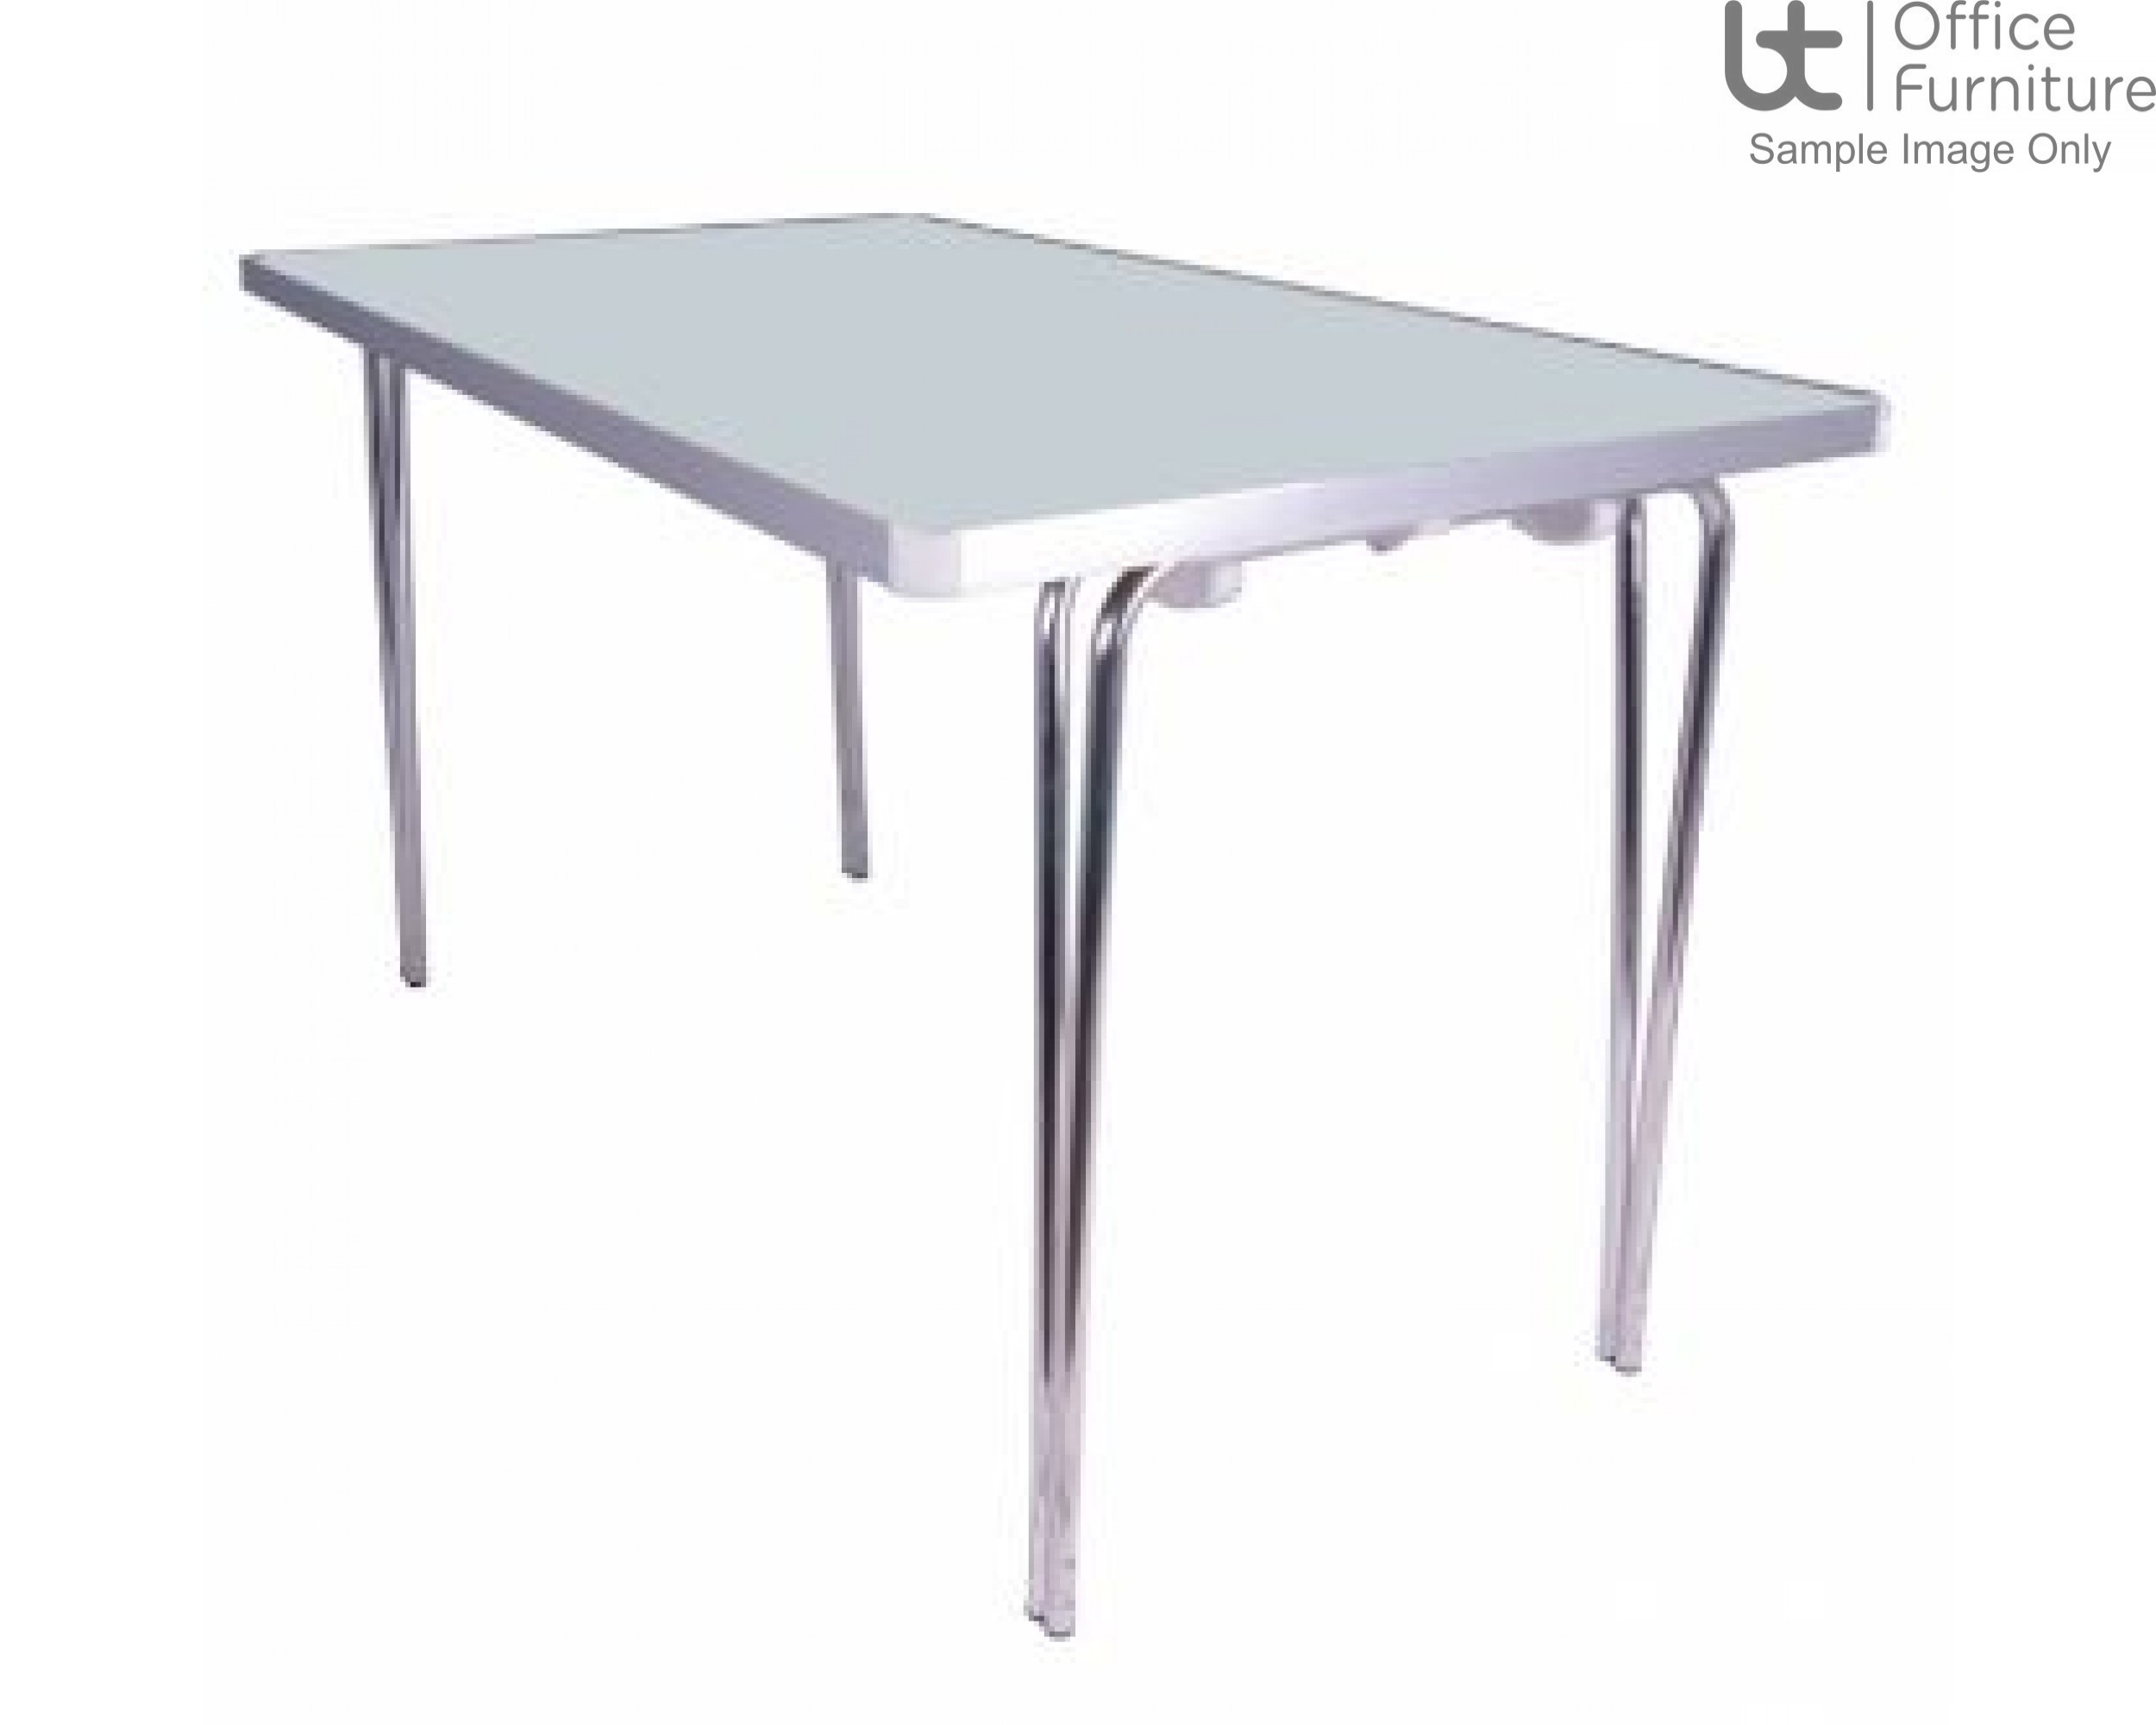 Economy Dining/Cafeteria/Canteen Folding Tables Width 1830mm